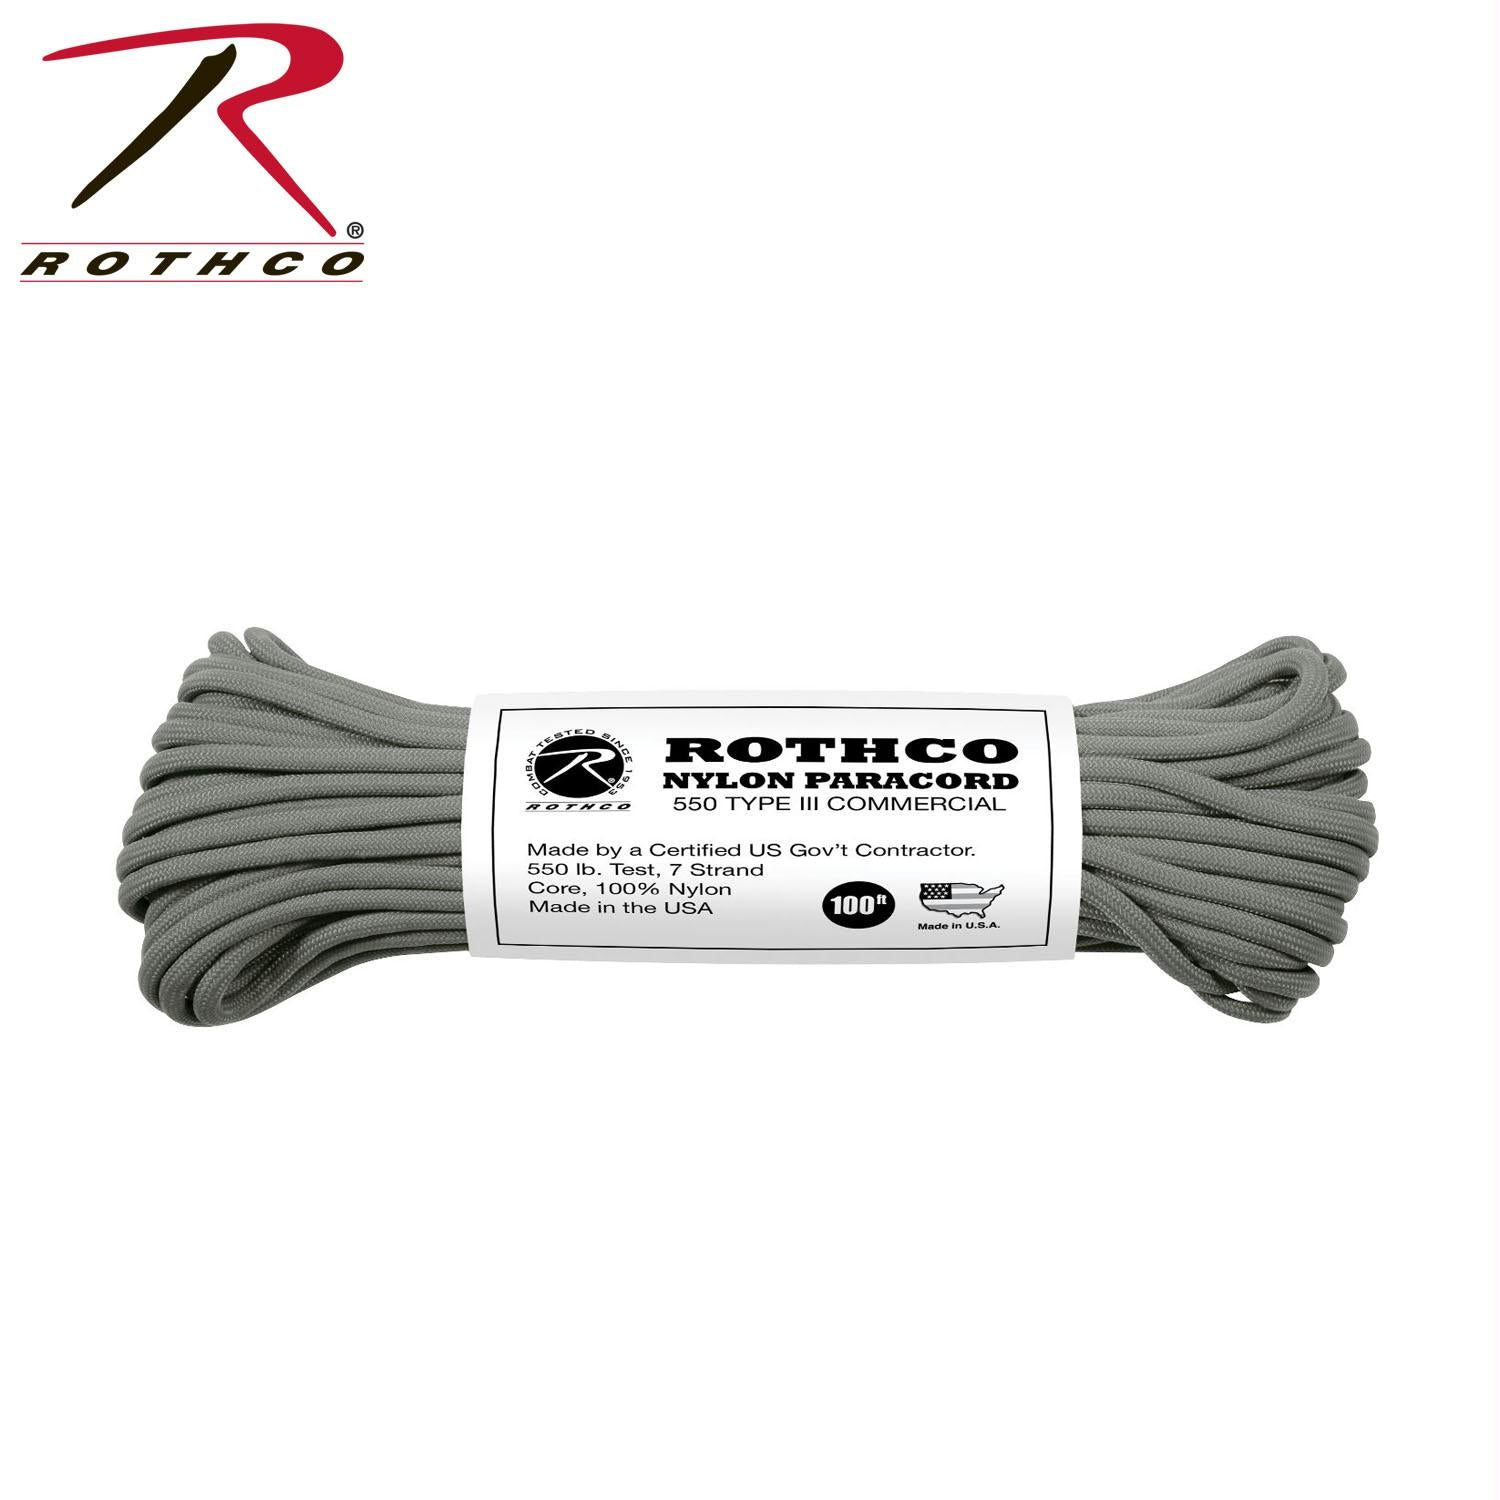 Rothco Nylon Paracord Type III 550 LB 100FT - Foliage Green